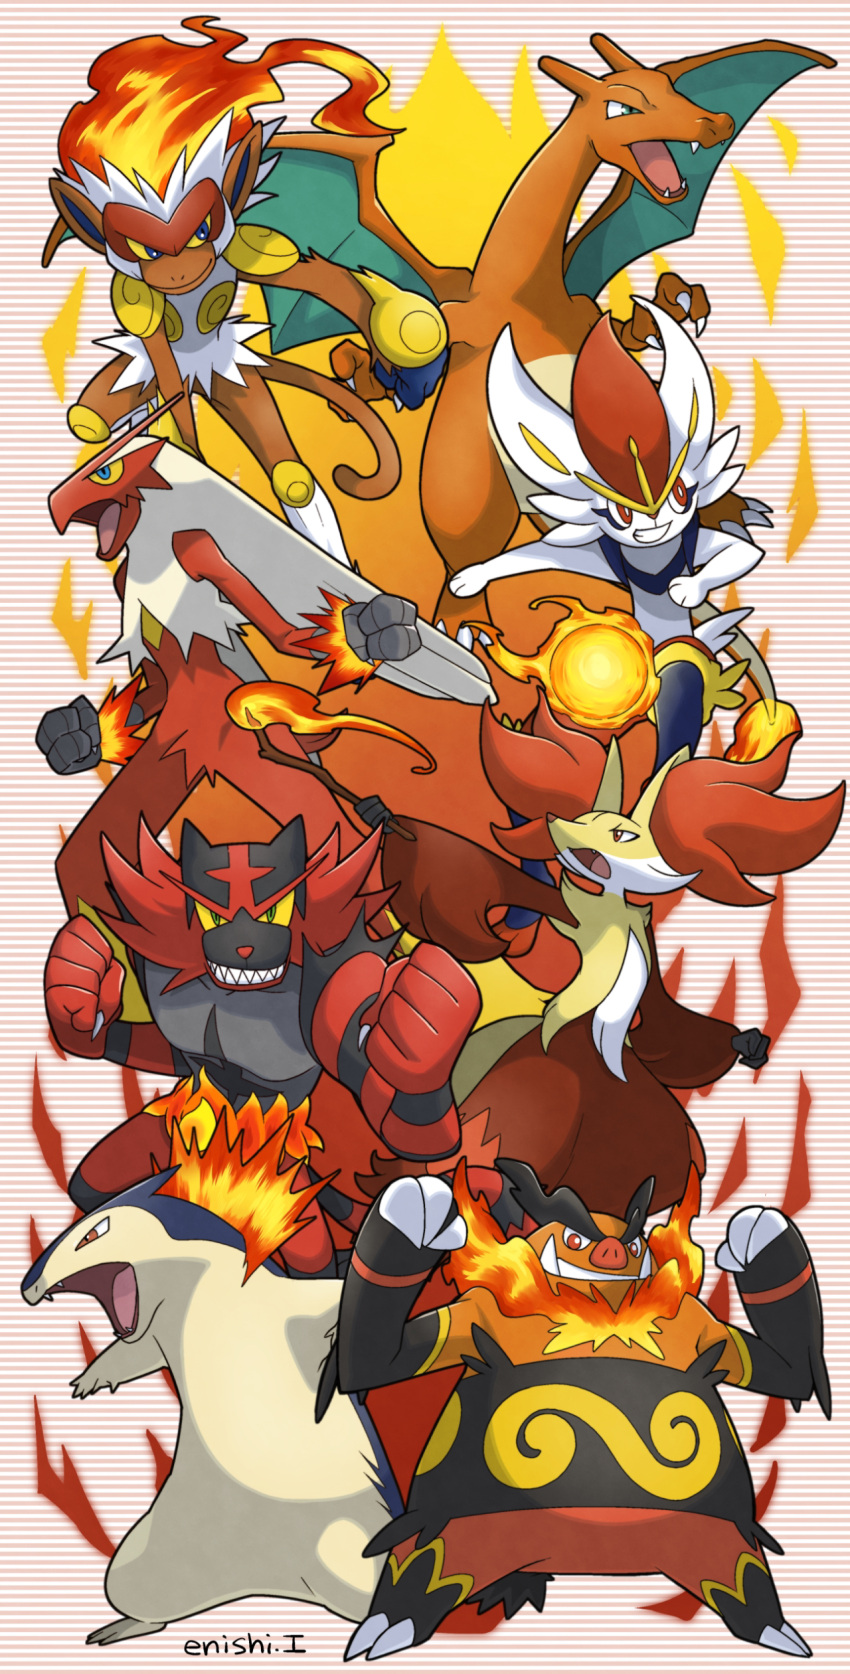 absurdres blaziken charizard cinderace commentary_request creature delphox emboar enishi_(menkura-rin10) gen_1_pokemon gen_2_pokemon gen_3_pokemon gen_4_pokemon gen_5_pokemon gen_6_pokemon gen_7_pokemon gen_8_pokemon highres incineroar infernape looking_at_viewer no_humans pokemon pokemon_(creature) signature striped striped_background typhlosion